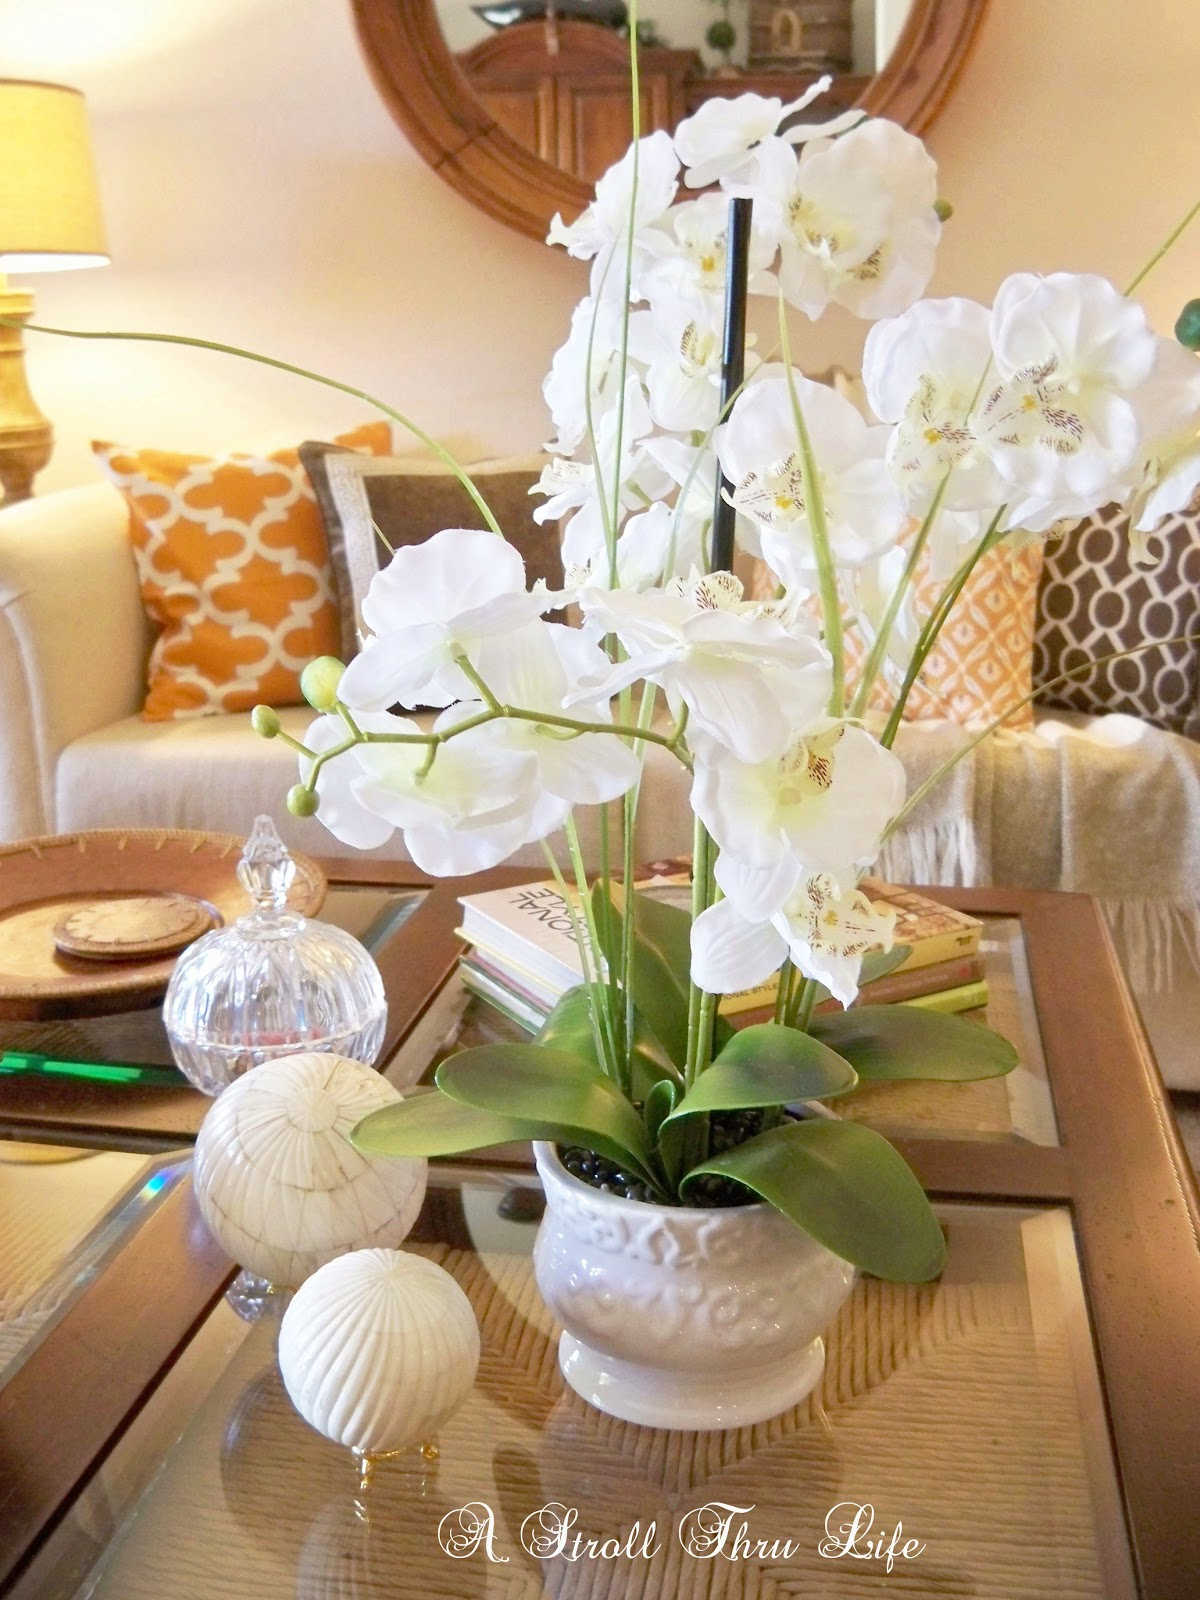 a pretty white orchid started a whole chain of events i thought the pillows and decor needed to be light and bright too: day orchid decor